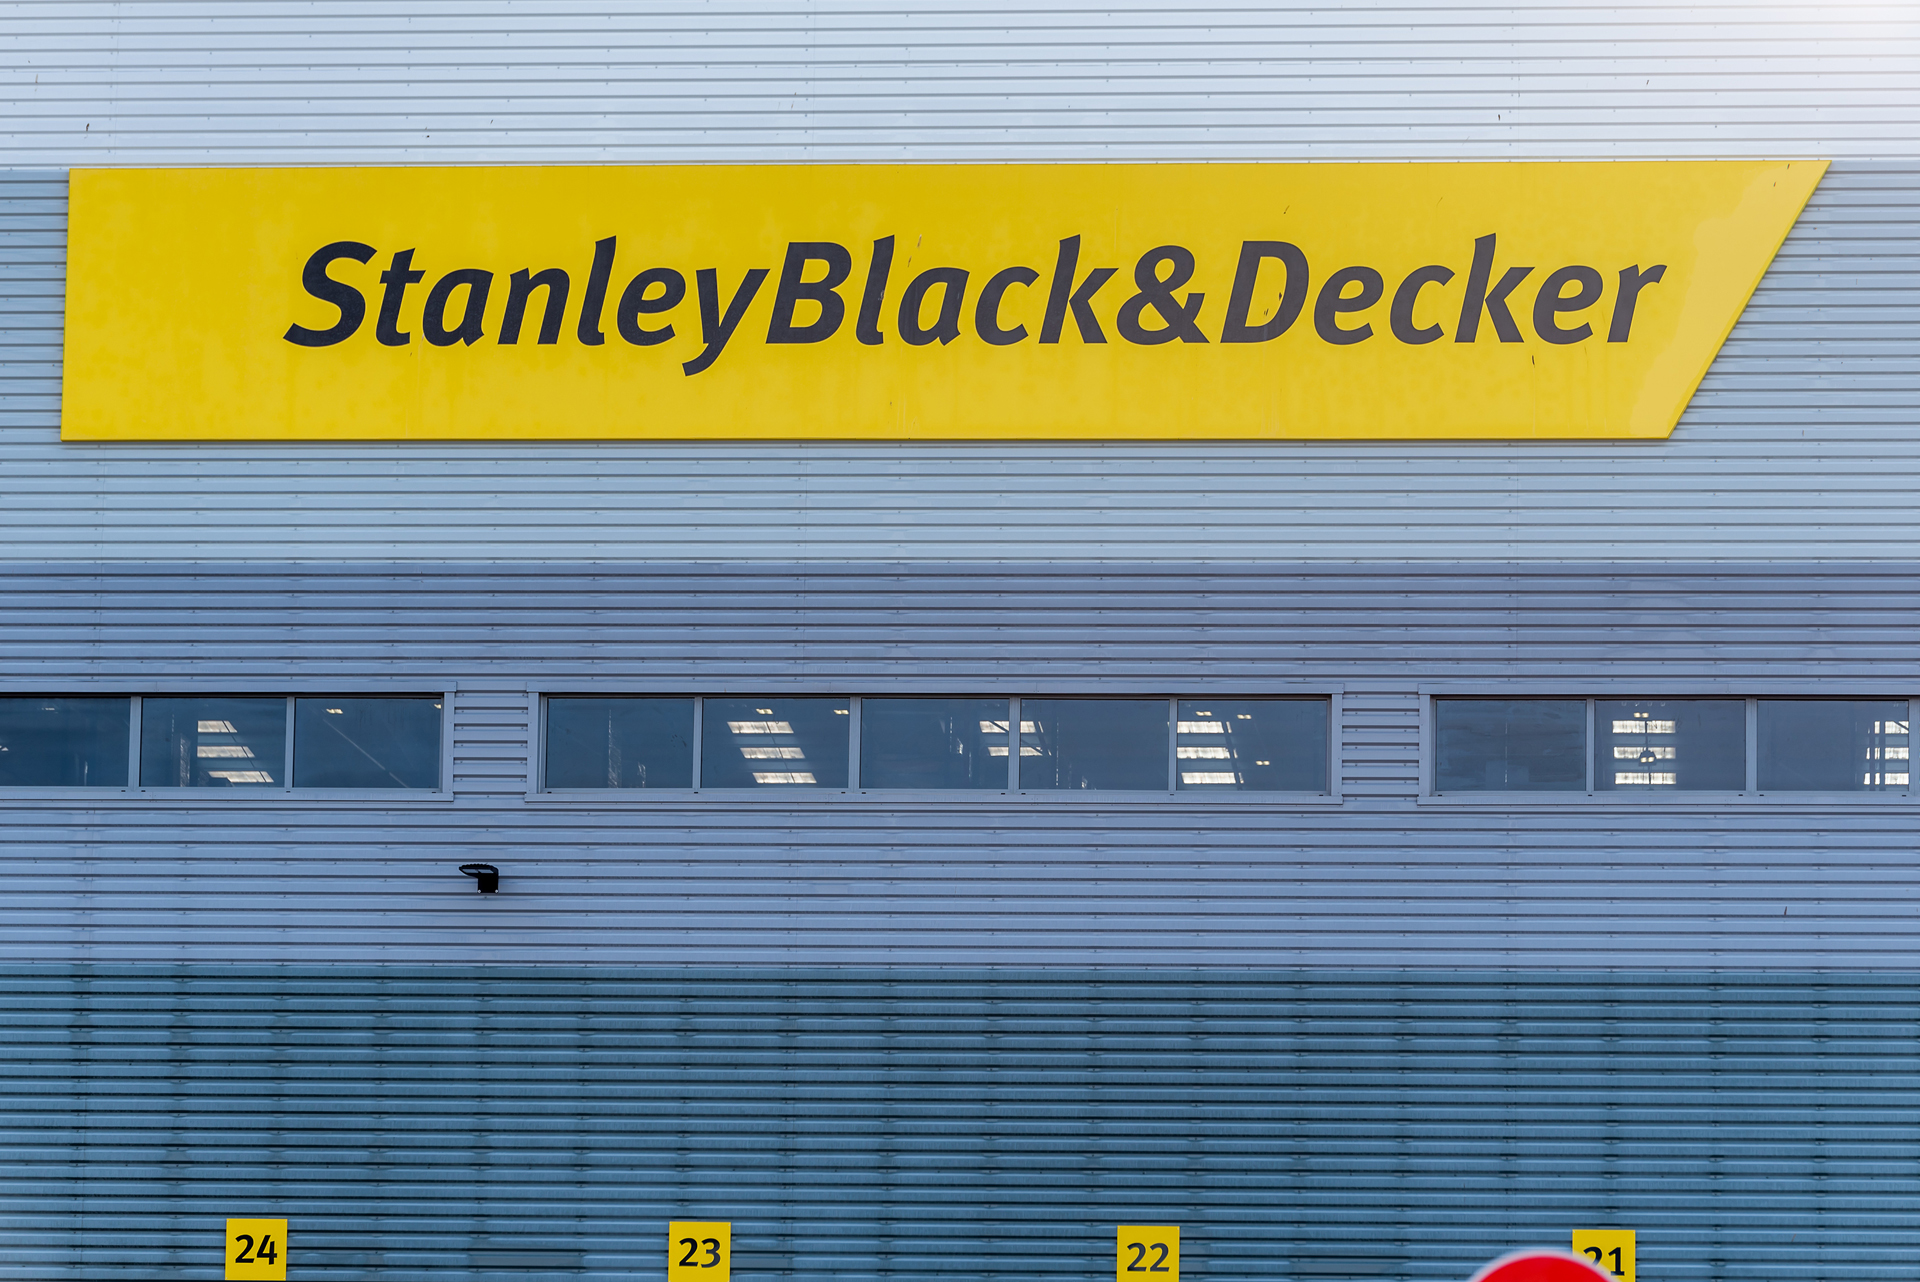 stanley black & decker.jpg